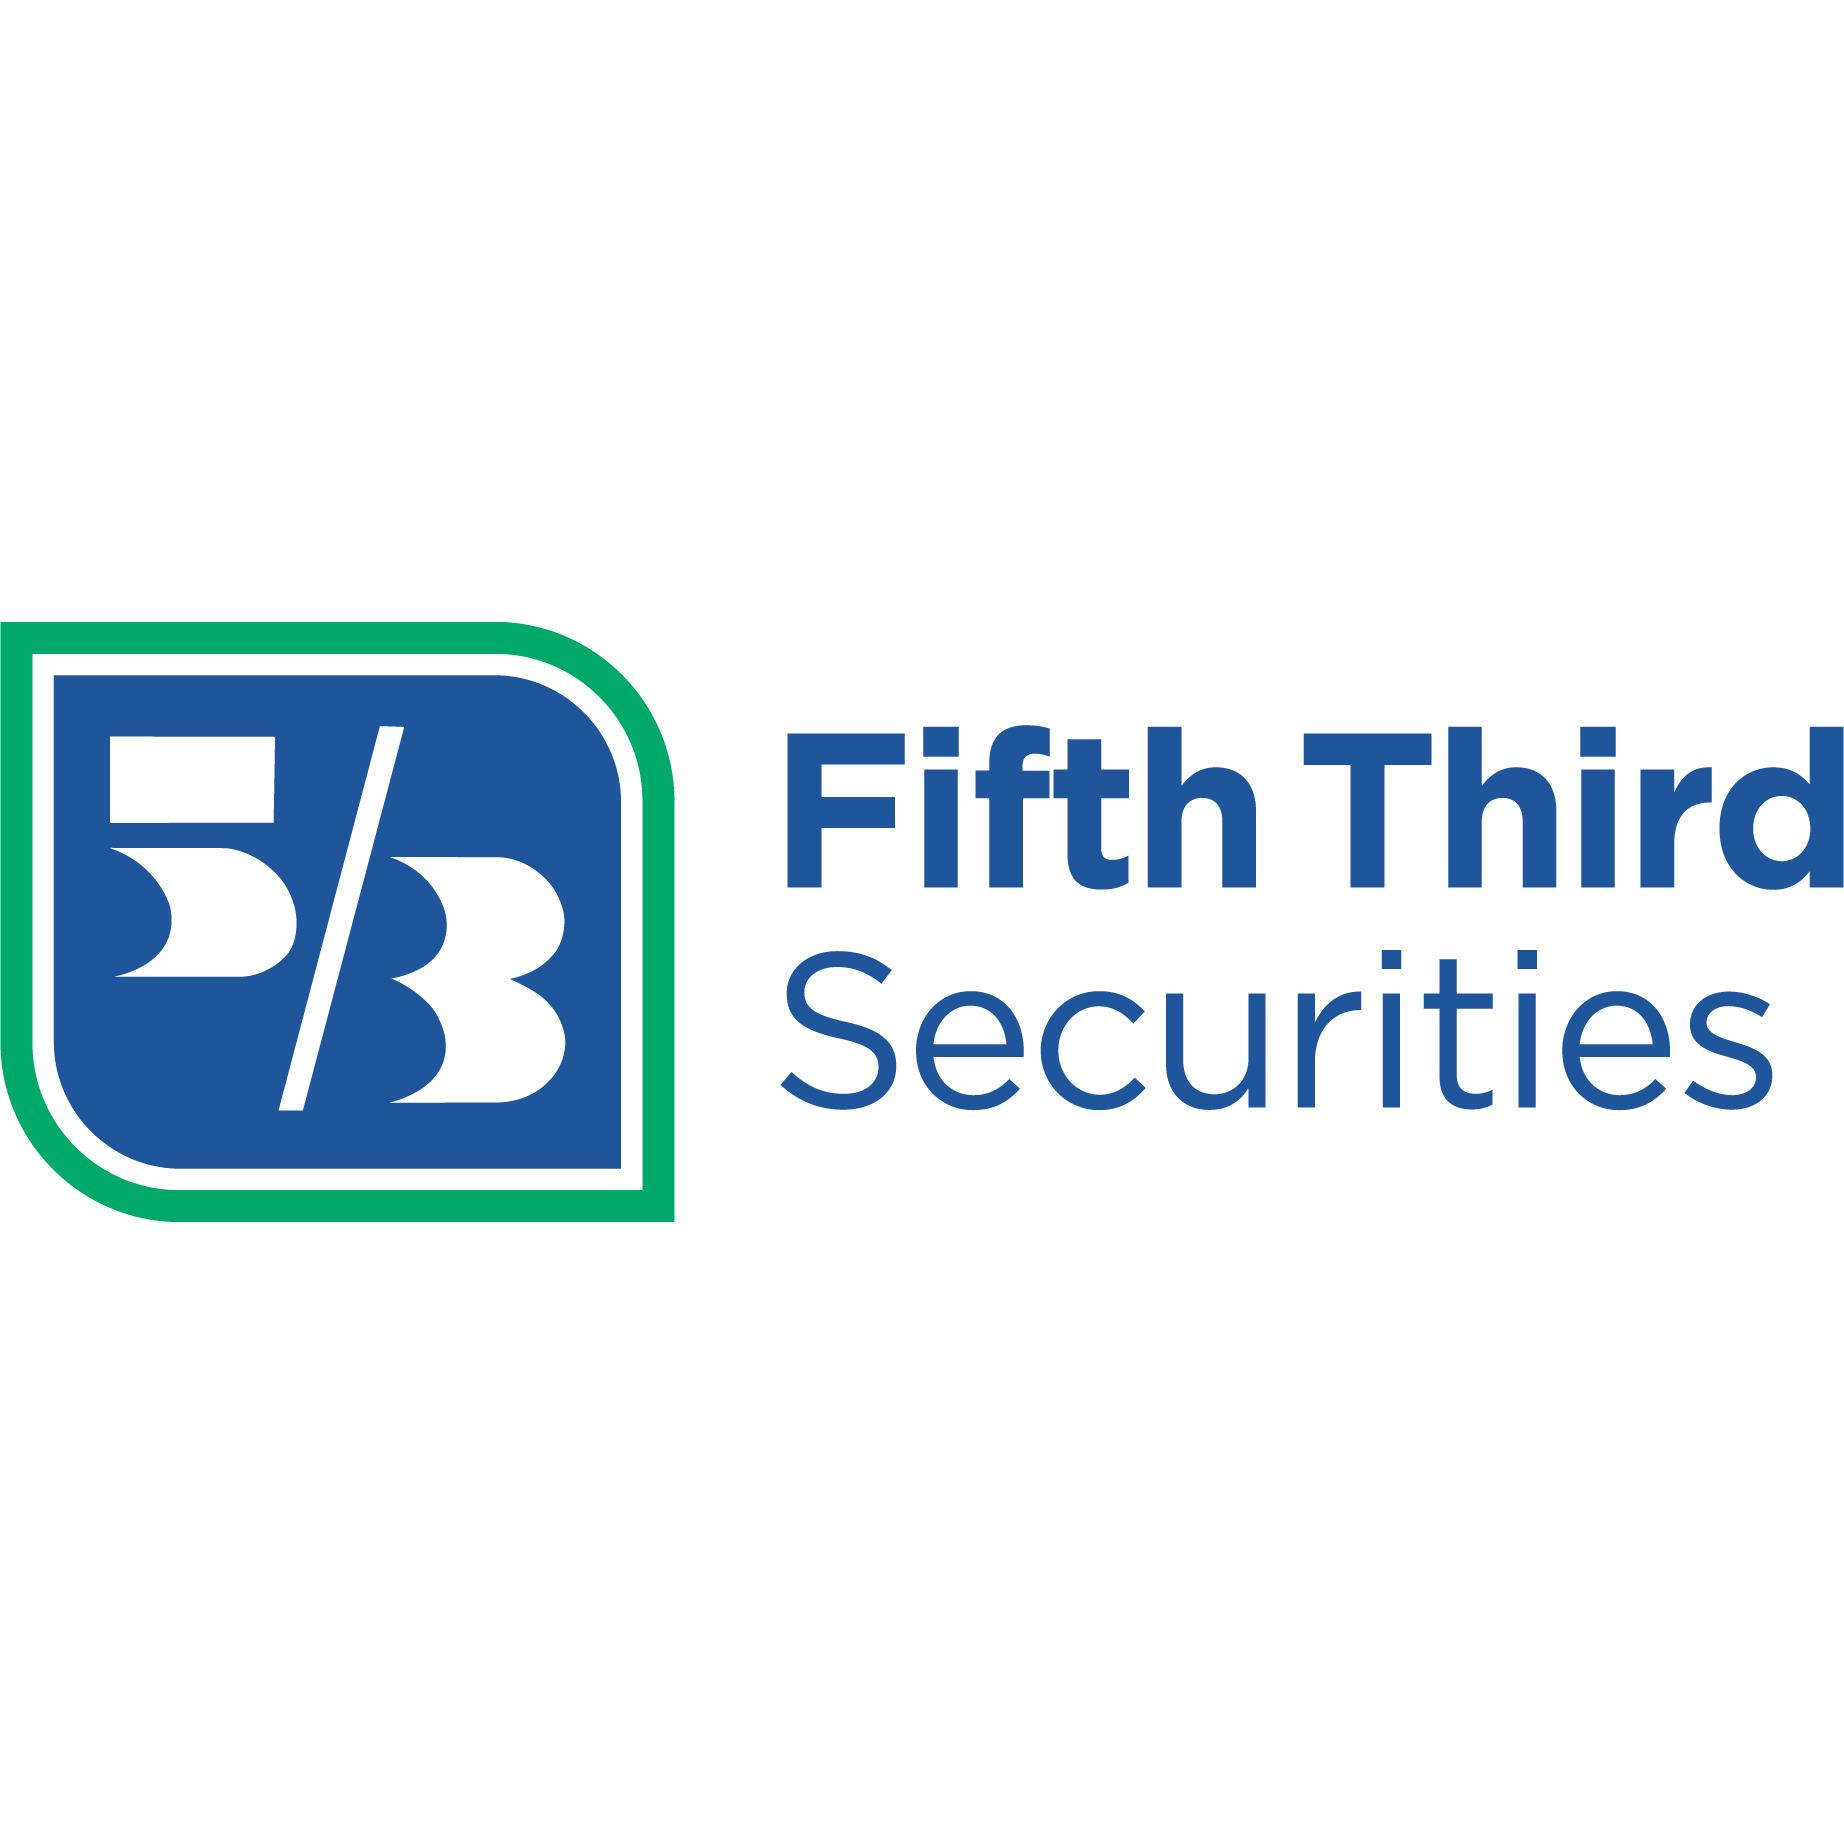 Fifth Third Securities - Keith Philippi